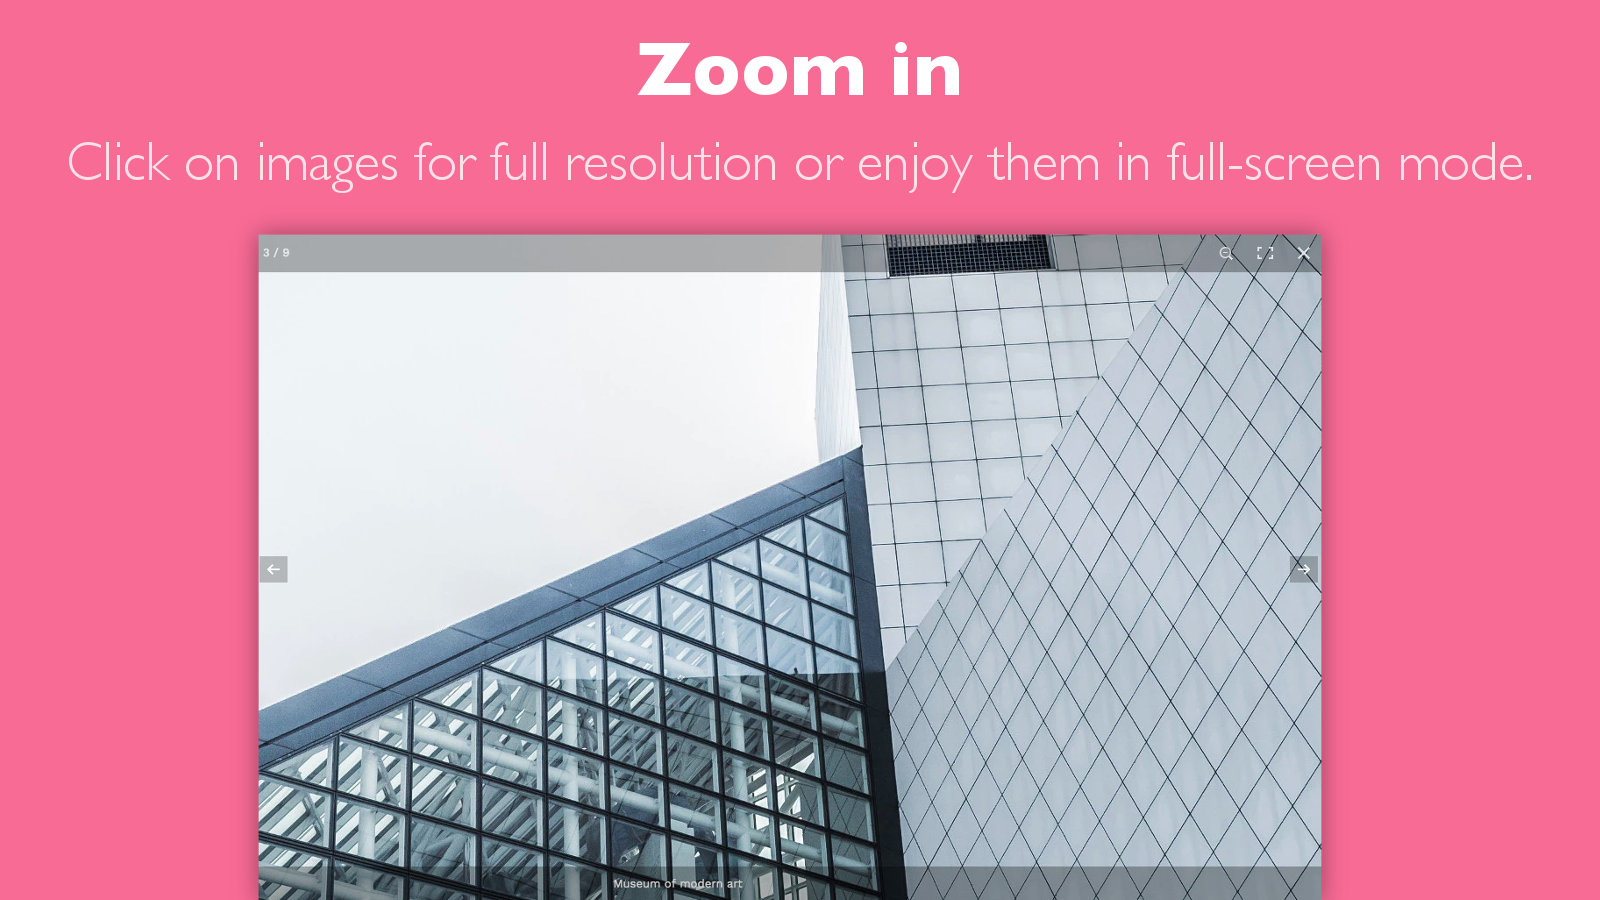 Zoom in and fullscreen image gallery modes in one click.